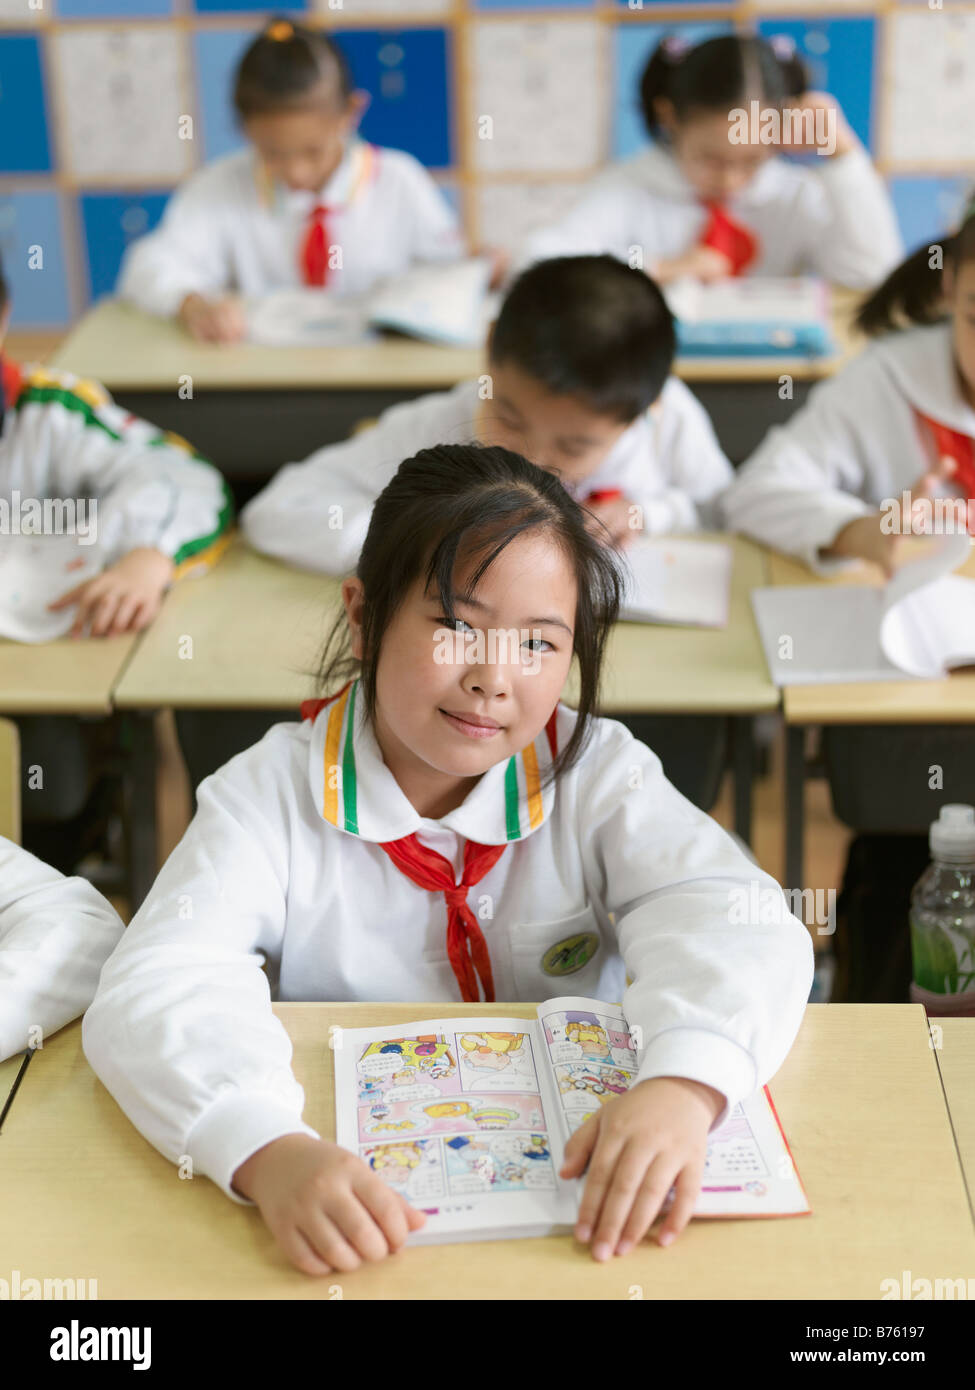 A classroom of young students reading a lesson from their textbook. - Stock Image